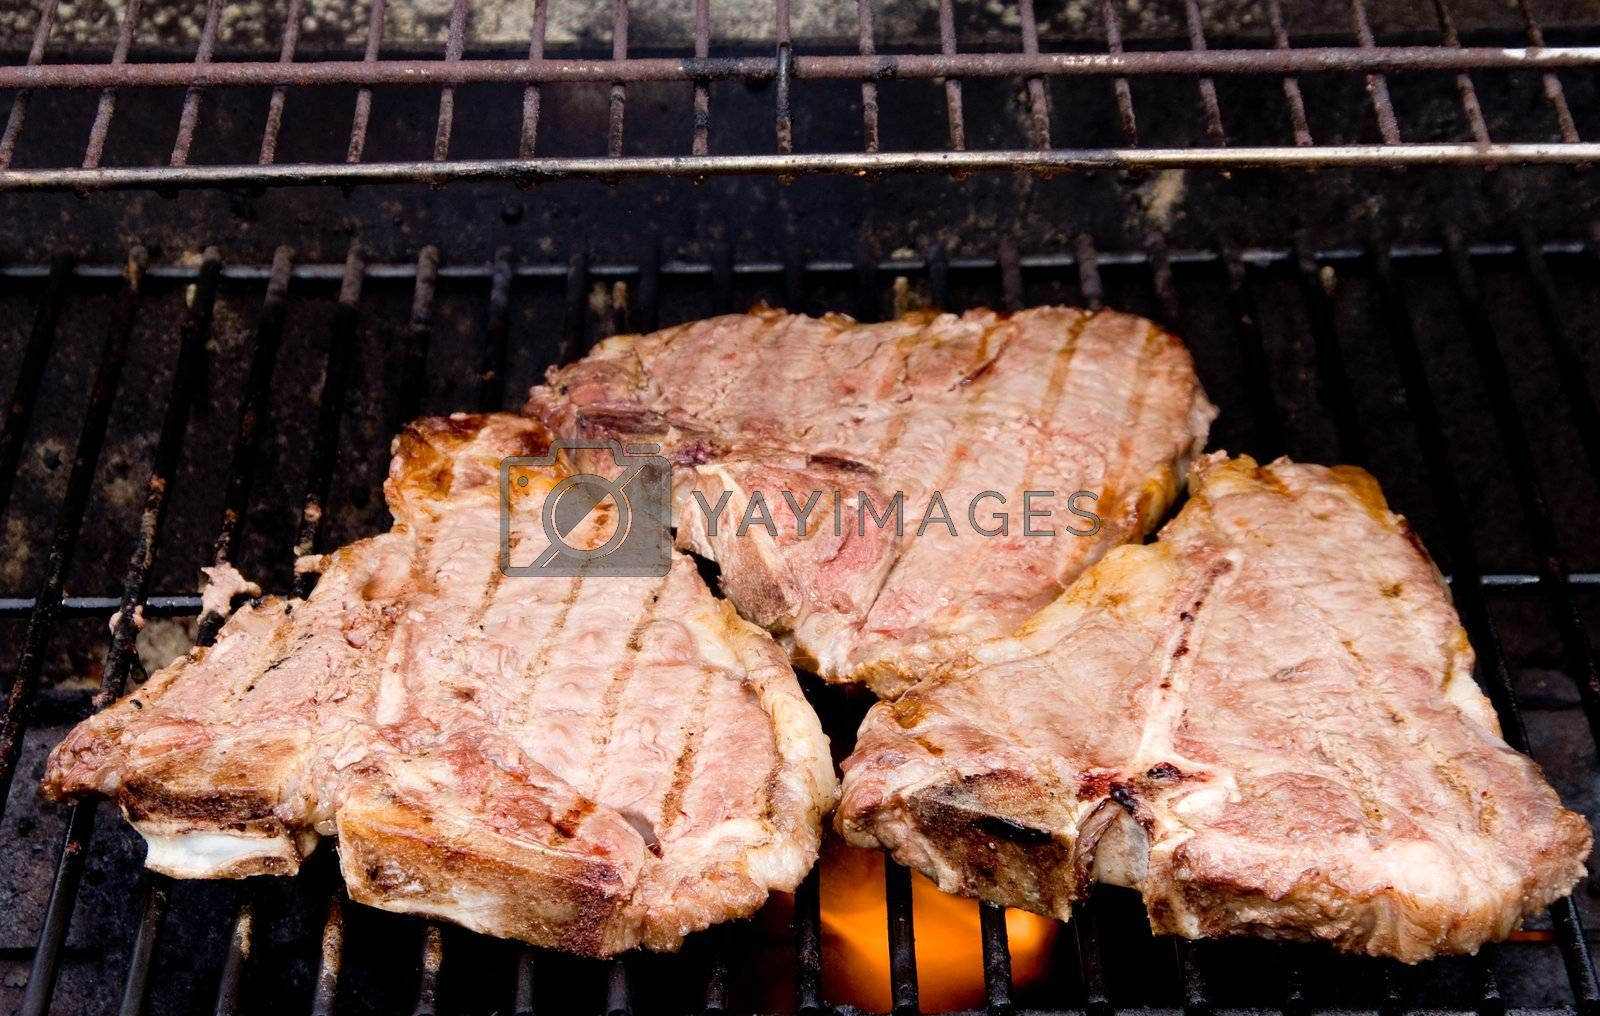 Delicious t-bone steaks cooking on a outdoor grill.